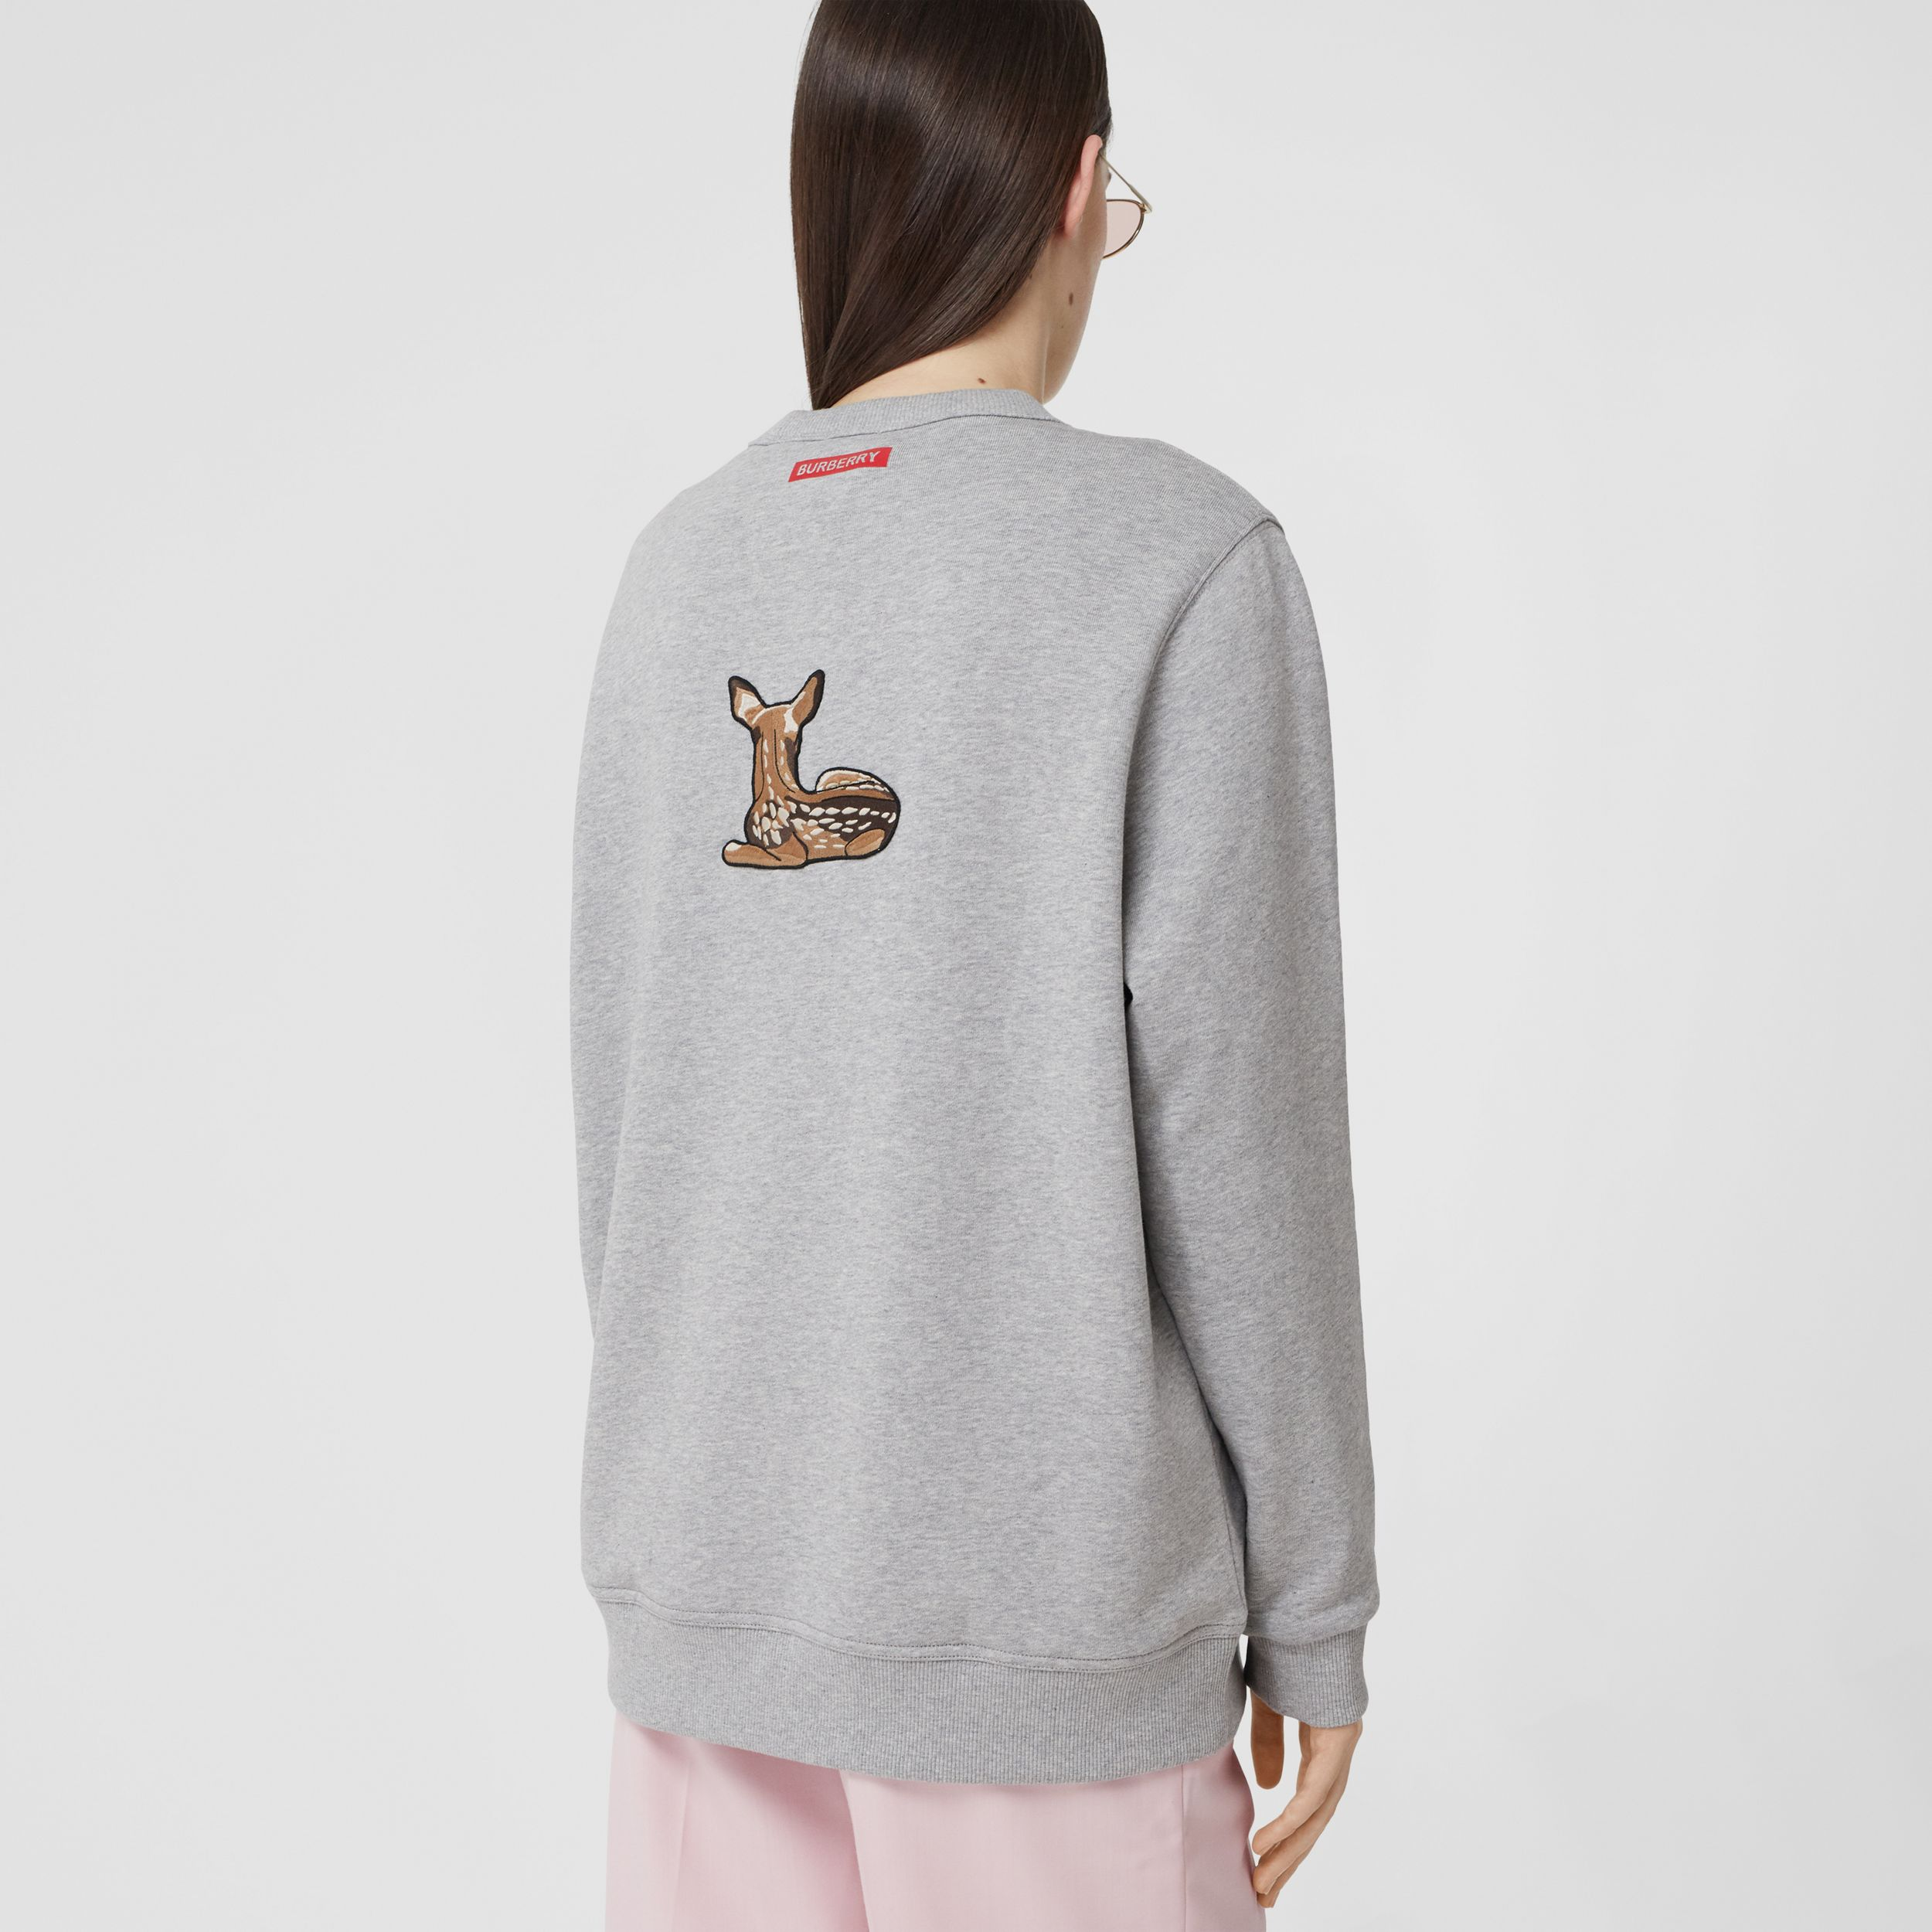 Deer Motif Cotton Oversized Sweatshirt in Pale Grey Melange - Women | Burberry - 3